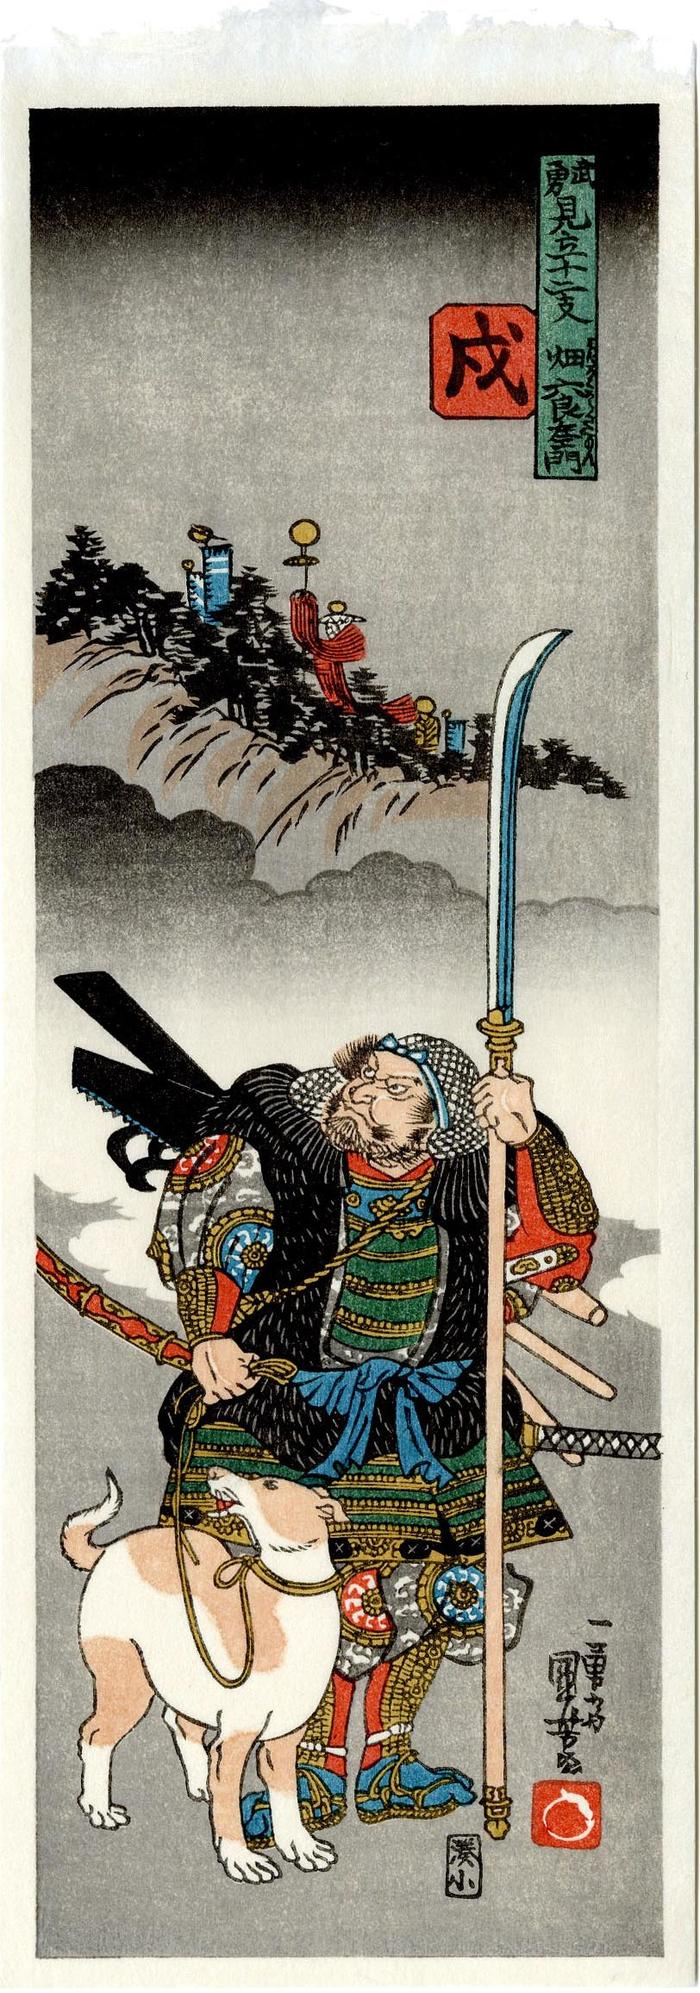 From the series Bravery Matched with the Twelve (Zodiac) Signs: (<i>Buyū mitate jūnishi</i> - 武勇見立十二支) Dog (戌) and Hata Rokurozaemon  (畑六郎左衛門)